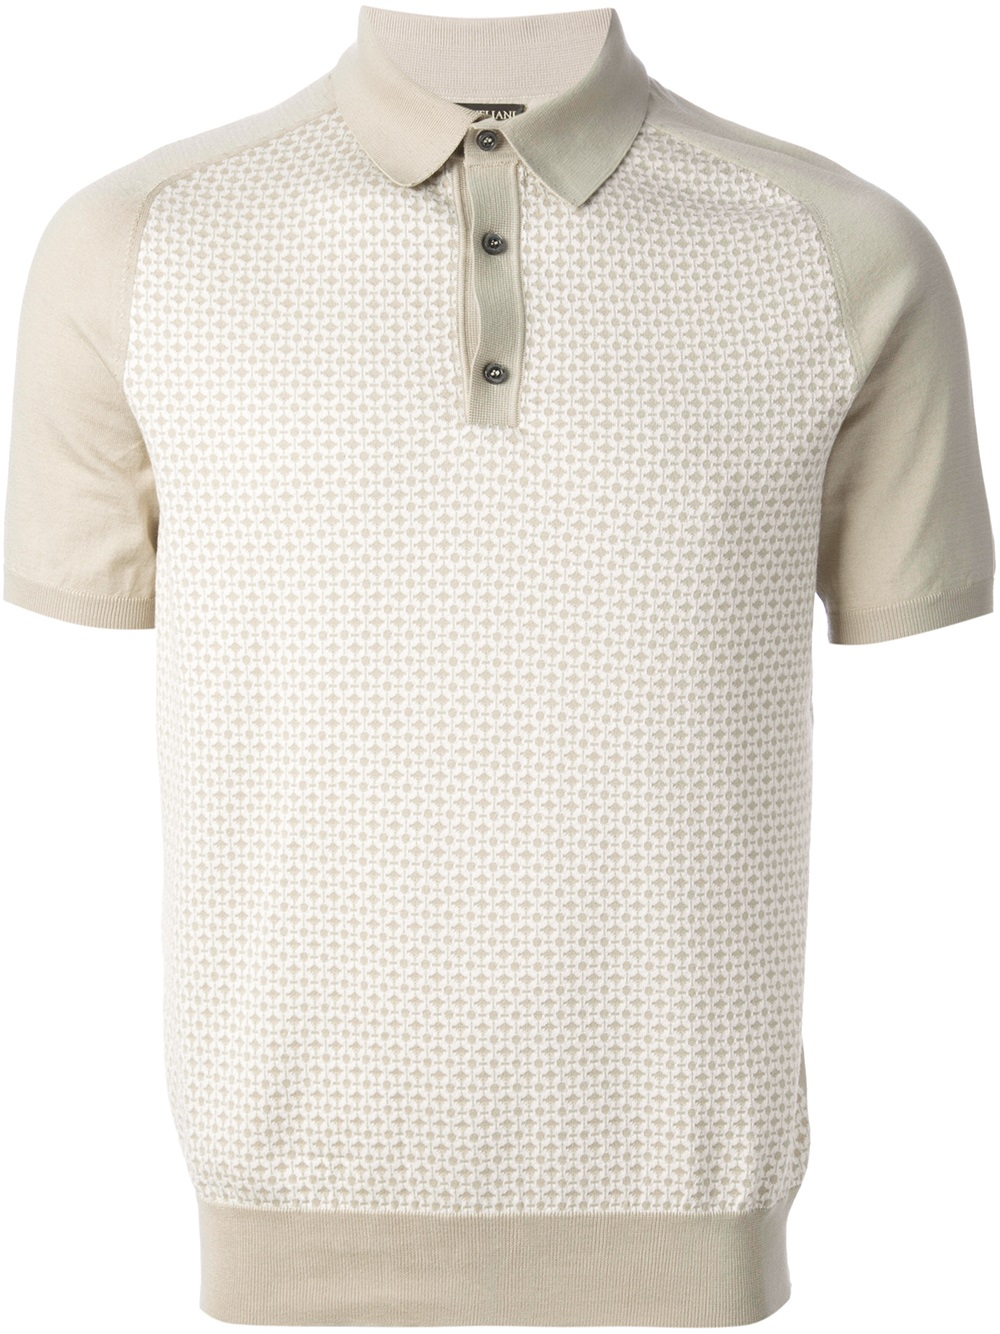 SHIRTS - Shirts Corneliani Sale With Paypal Extremely Online Cheap Best Sale Fast Express Cheap Sale Amazing Price 1rTyHVF